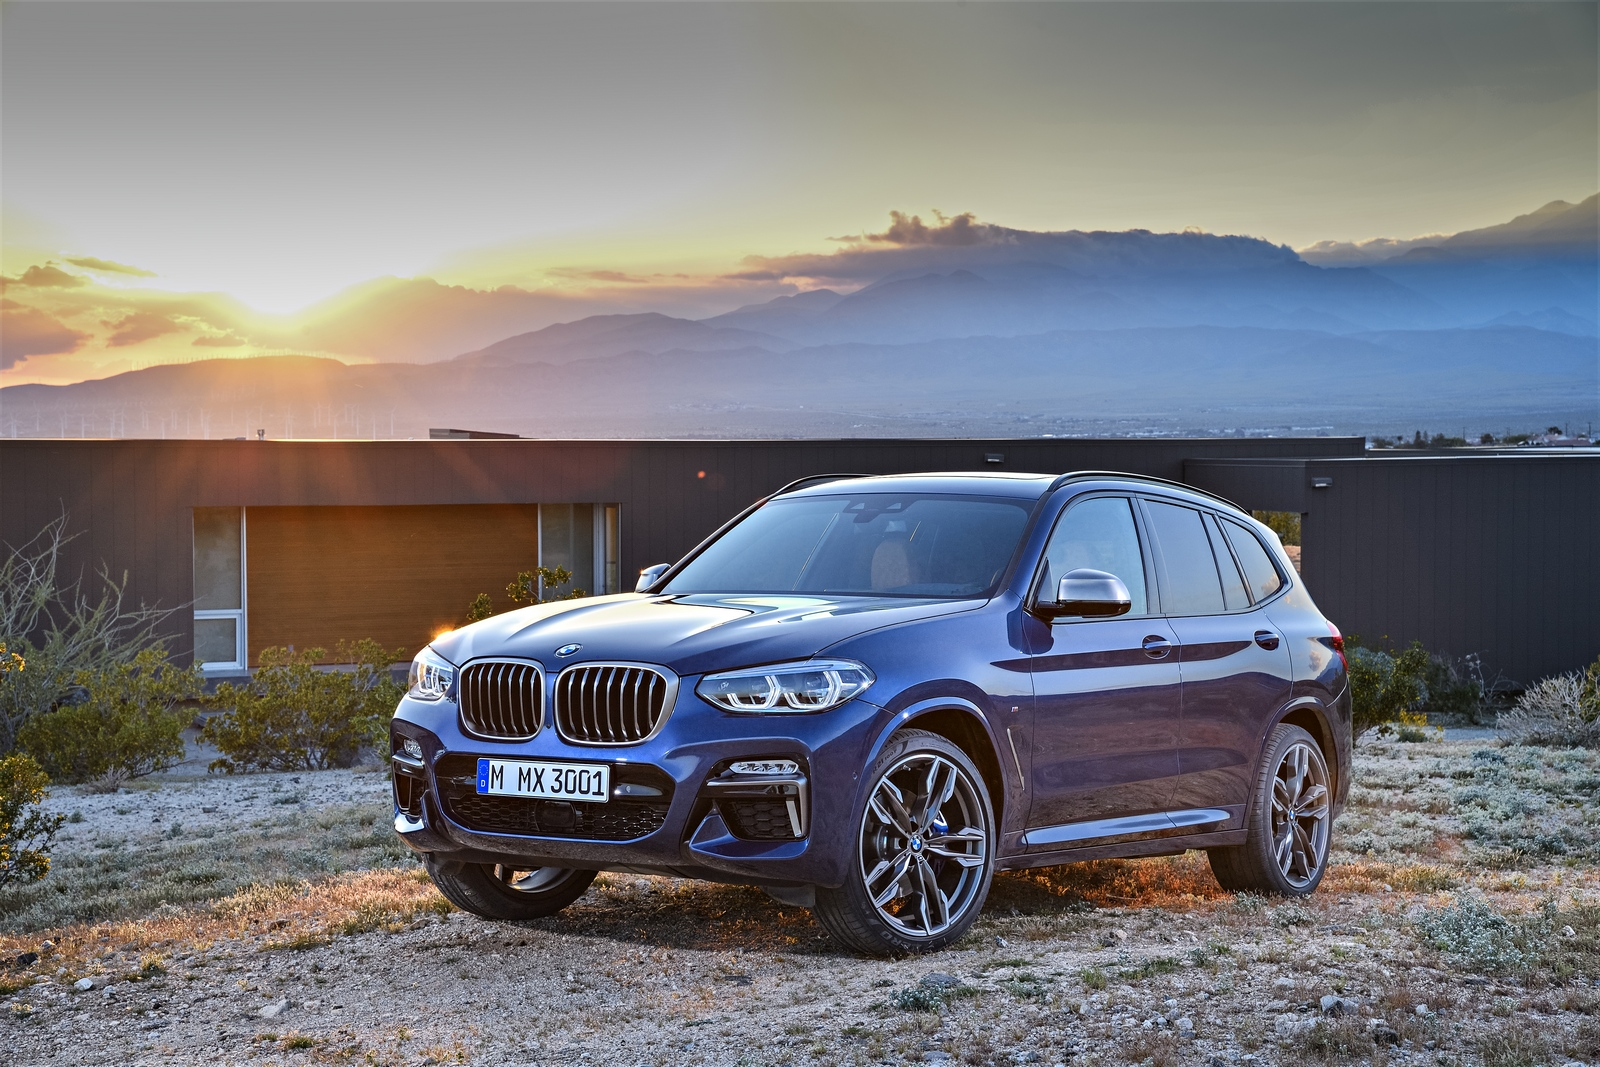 The Next Generation: BMW X3 (2018) Revealed